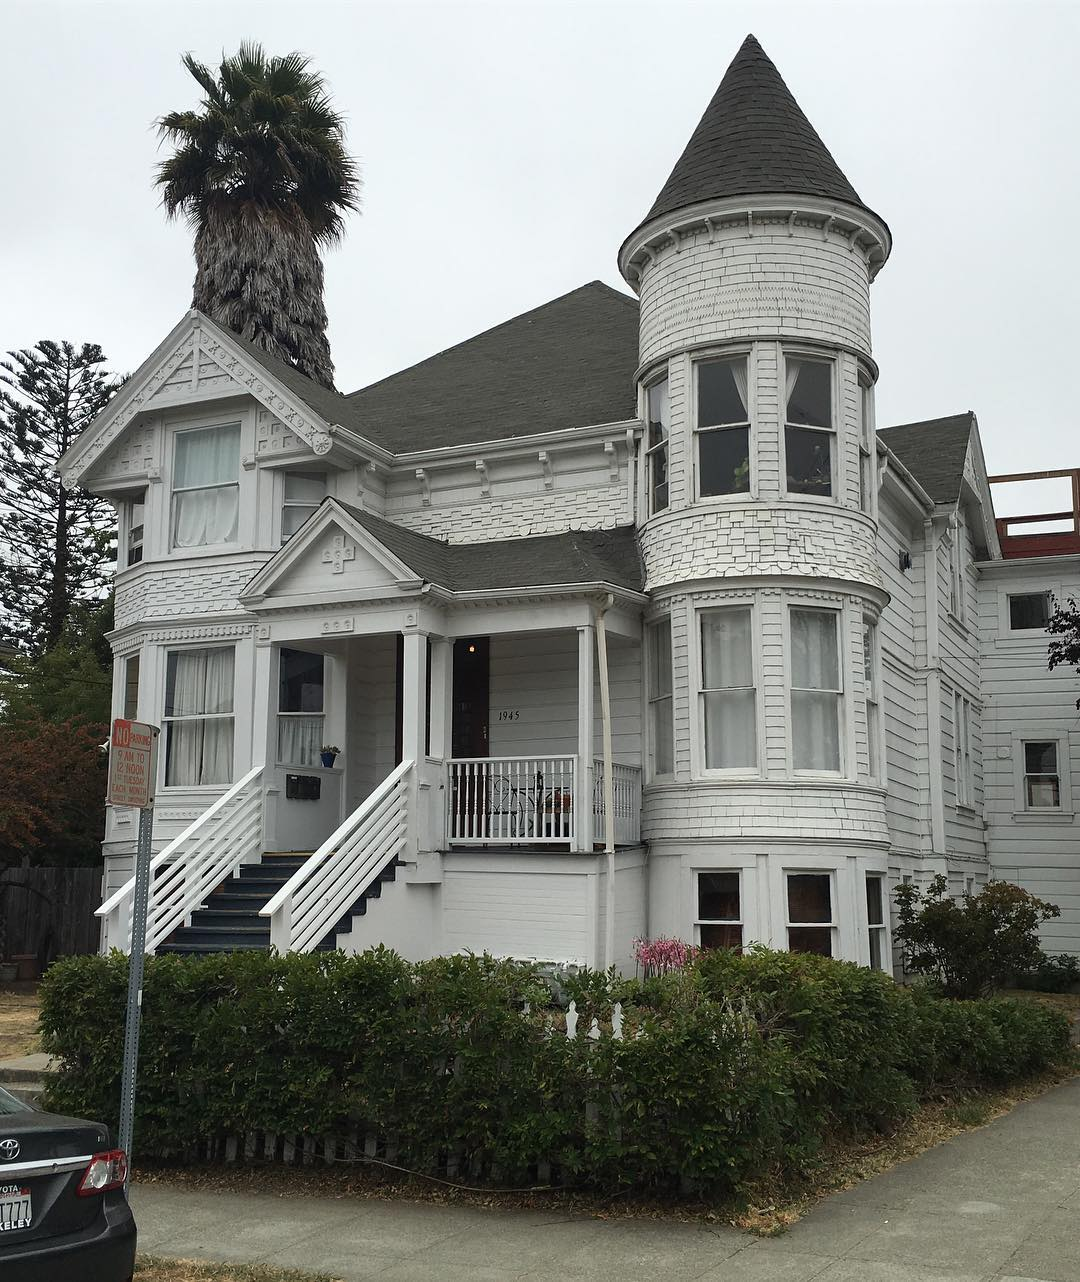 Queen anne style victorian home in berkeley the shelter blog for Queen anne home